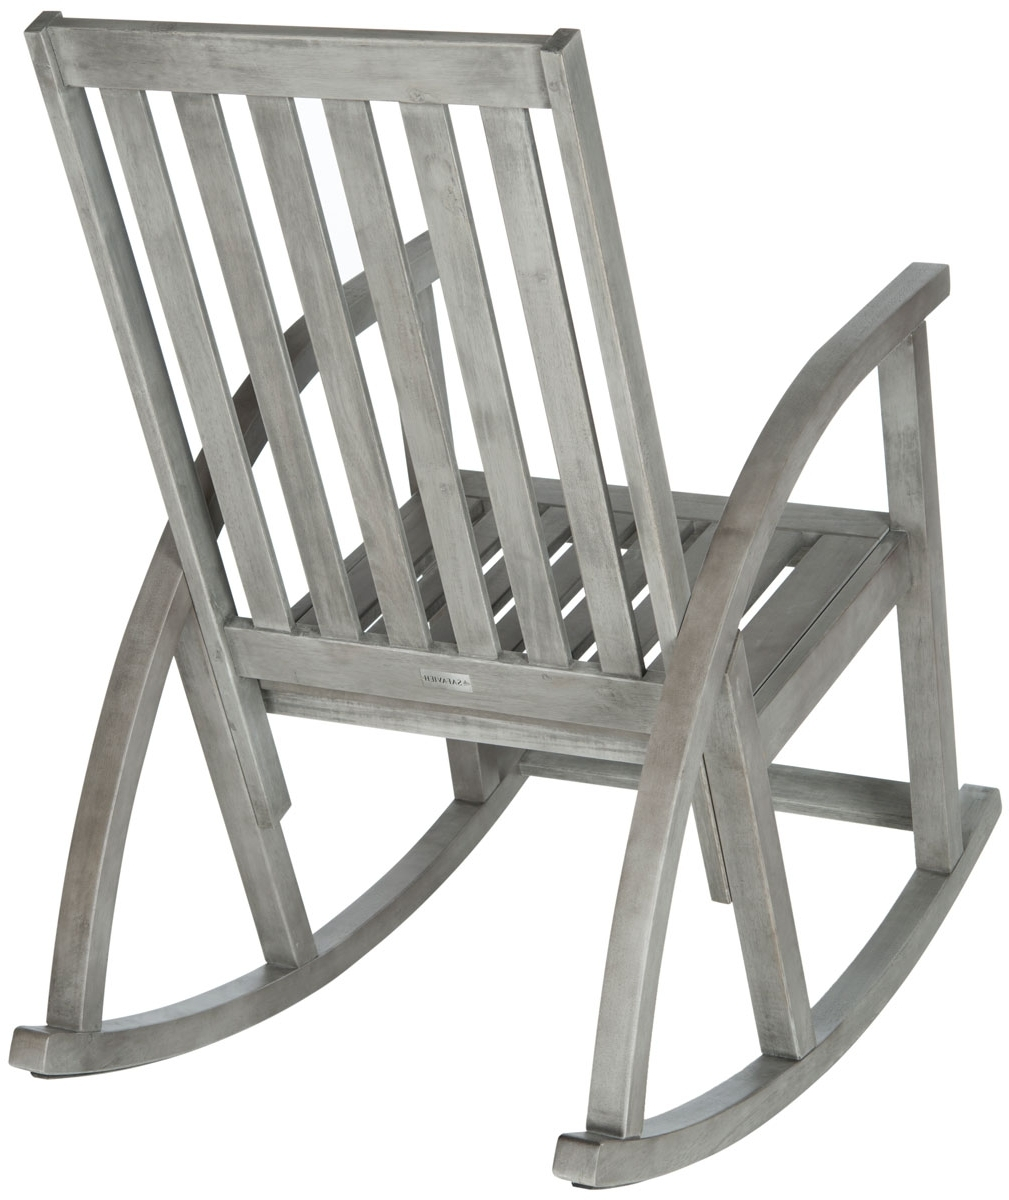 Well Liked Zen Rocking Chairs Within Outdoor Rocking Chairs Furniture Safavieh Back Gray Chair Zen Wooden (View 12 of 15)